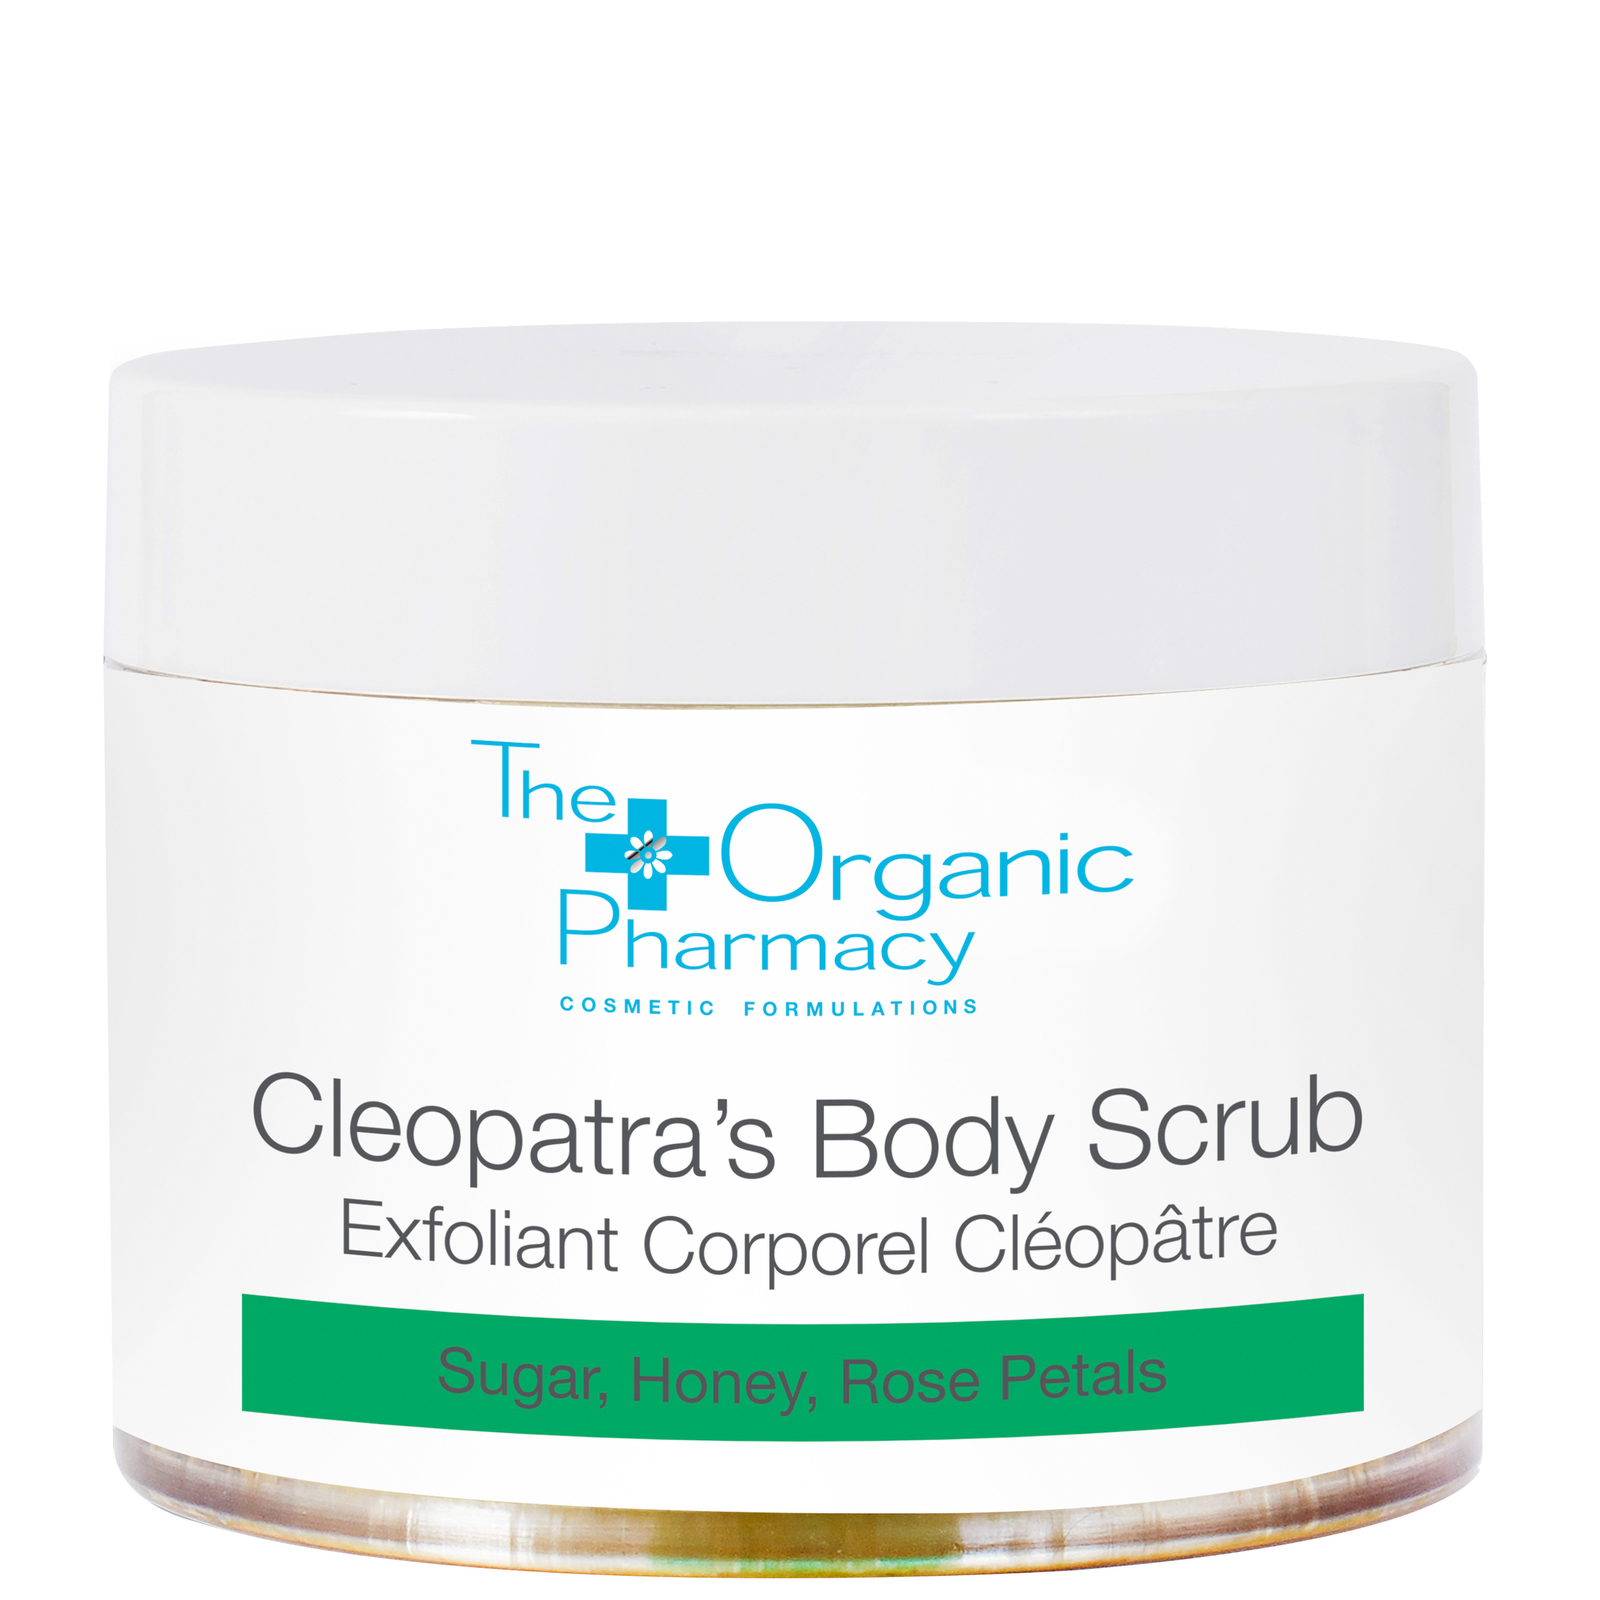 The Organic Pharmacy Bath & Shower Cleopatra's Body Scrub 400g